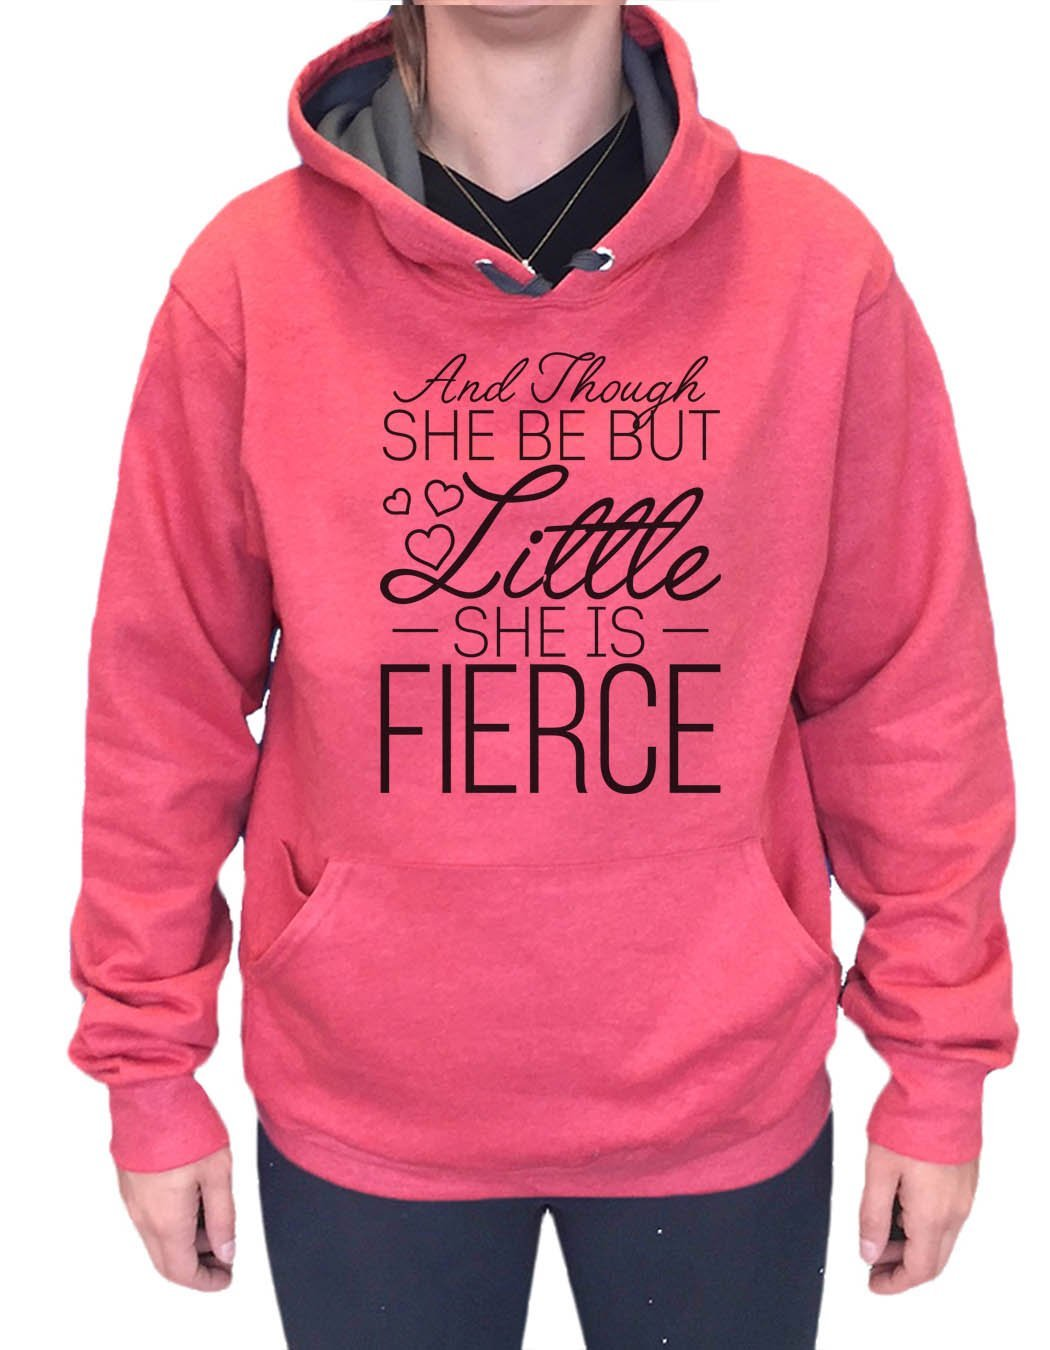 UNISEX HOODIE - And Though She Be But Little She Is Fierce - FUNNY MENS AND WOMENS HOODED SWEATSHIRTS - 2144 Funny Shirt Small / Cranberry Red